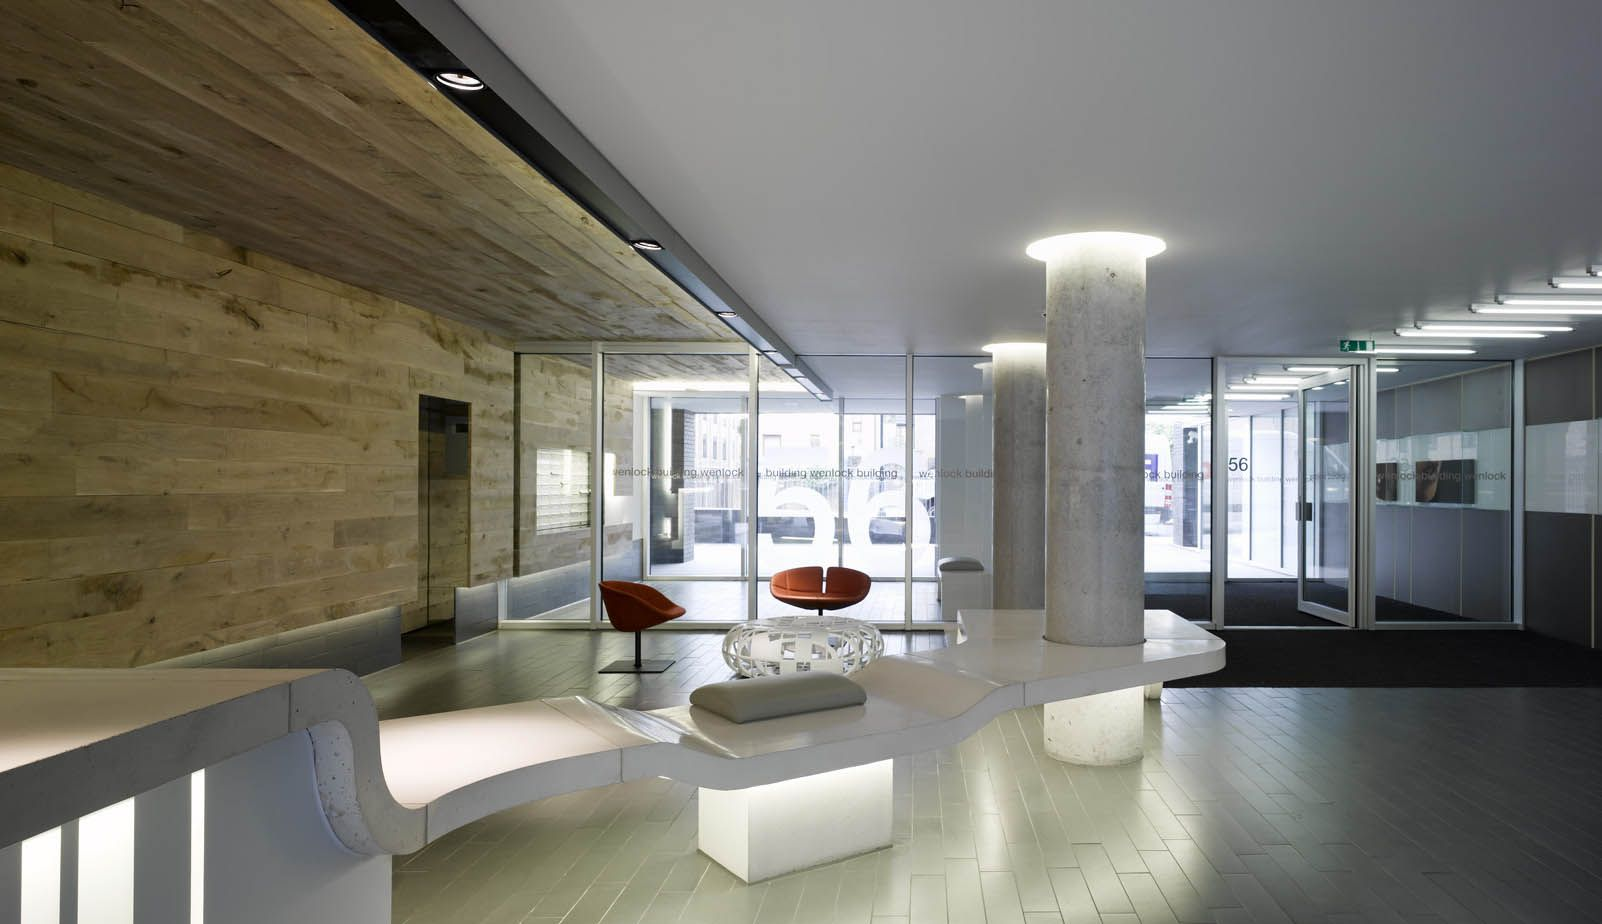 Concrete Interior Design concrete interior design: concrete tables & seating uk | cool